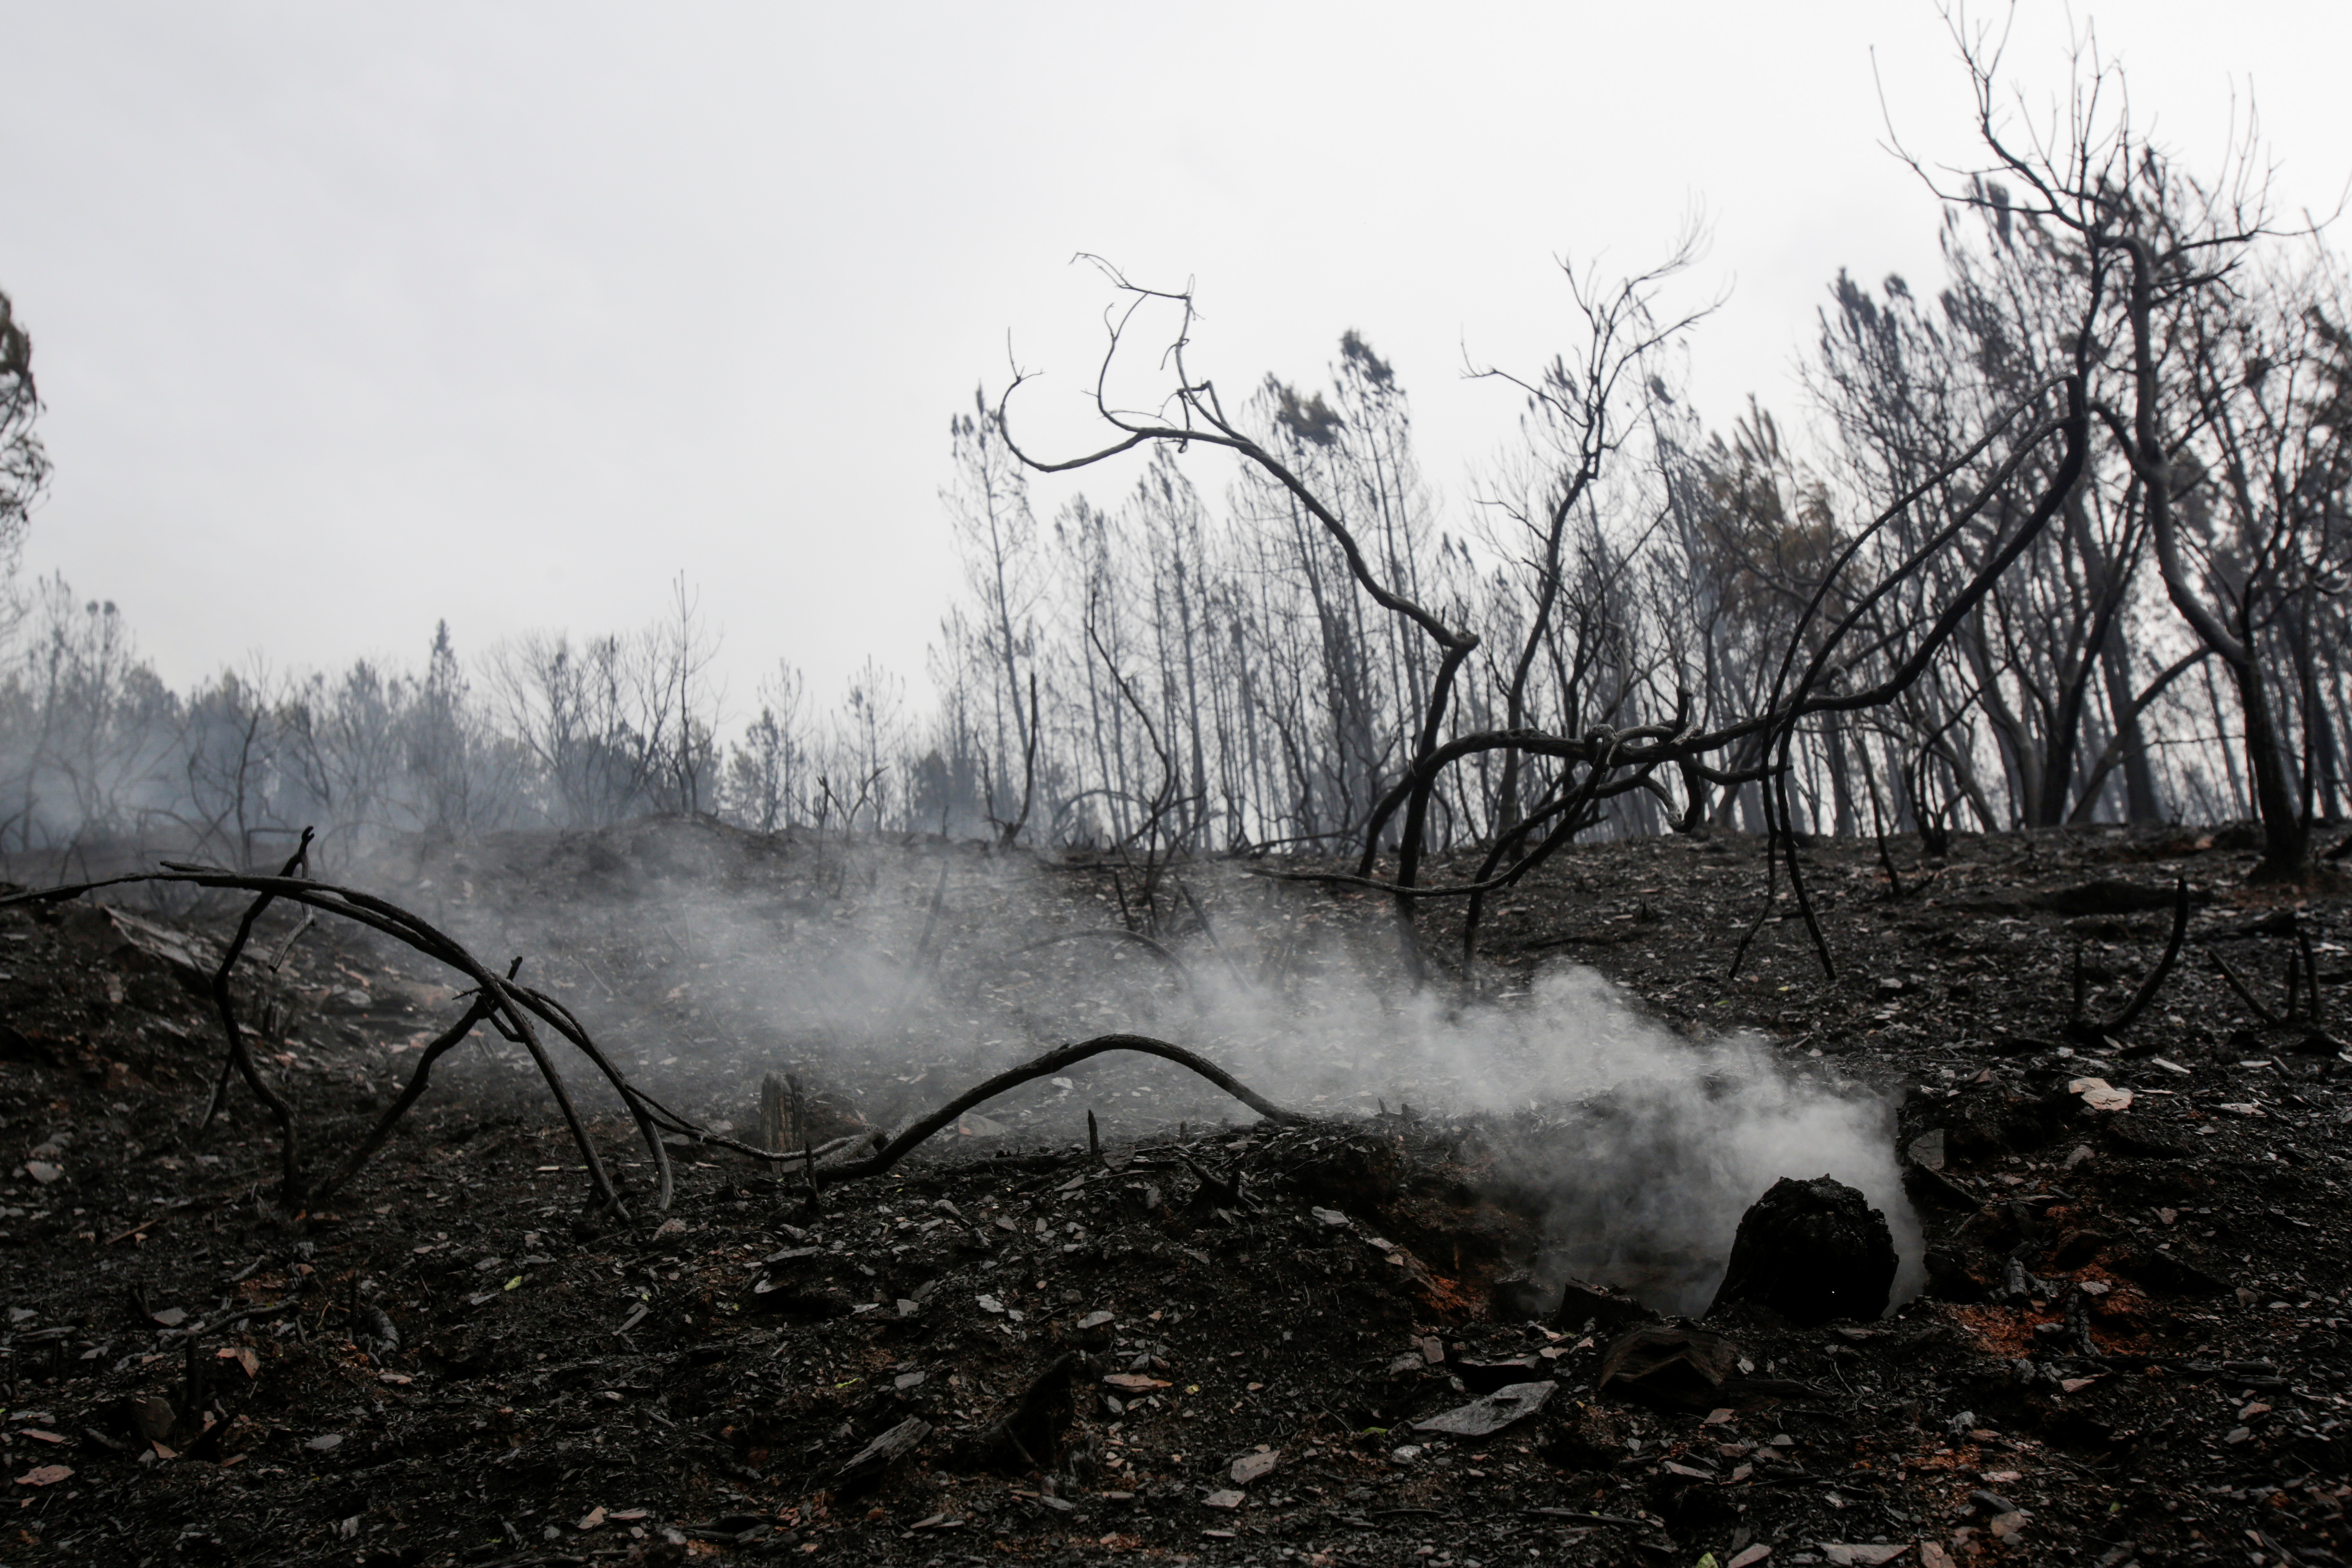 Smoke rises from a burnt tree after a wildfire near Ribas de Sil, northwestern Spain, September 7, 2021. REUTERS/Miguel Vidal